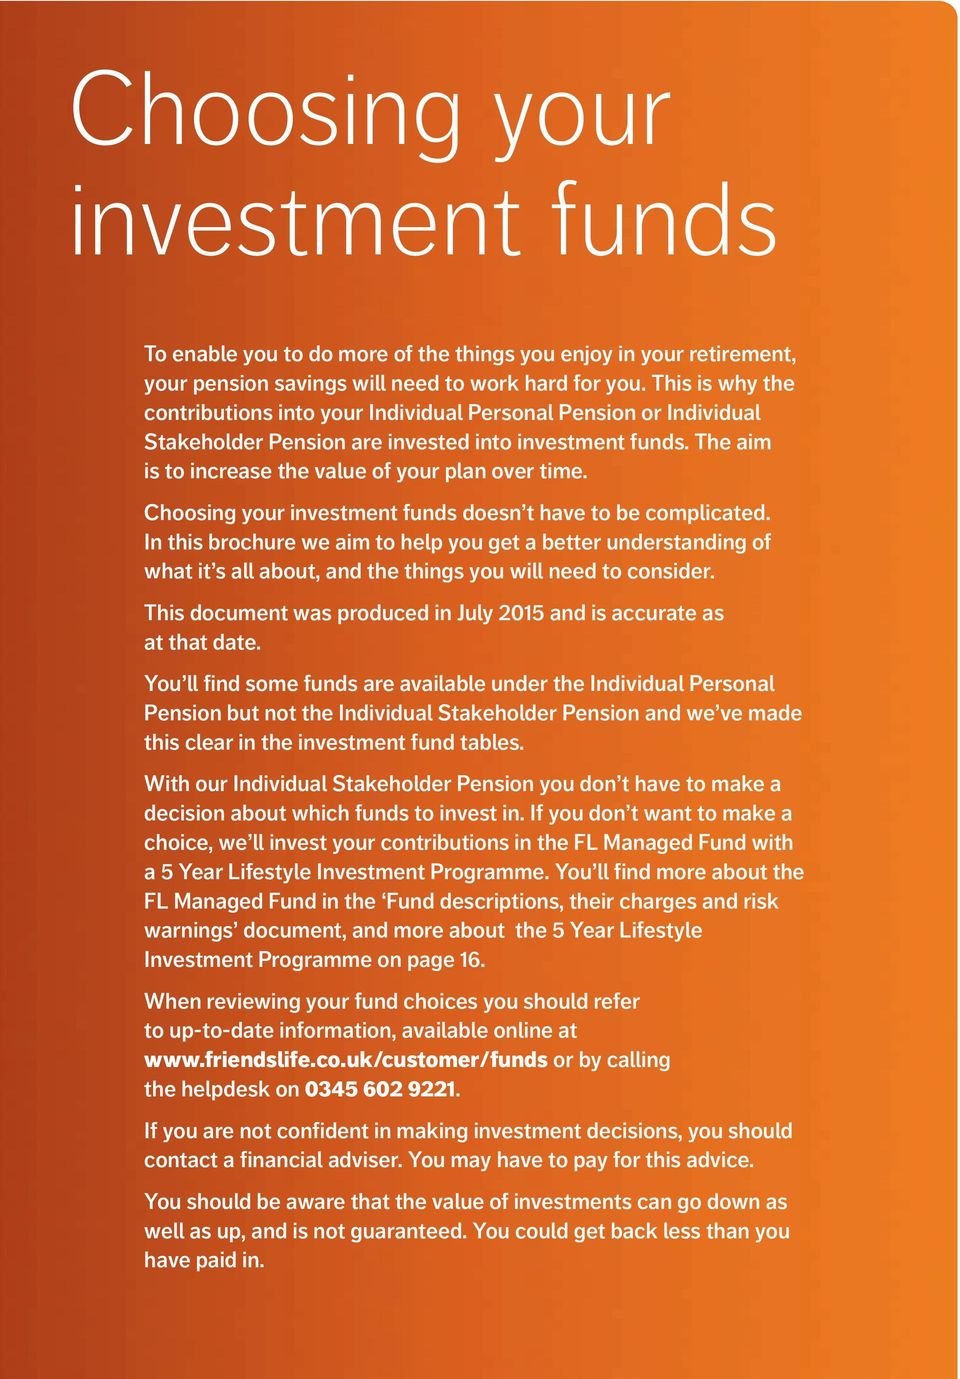 Choosing your investment funds doesn t have to be complicated. In this brochure we aim to help you get a better understanding of what it s all about, and the things you will need to consider.